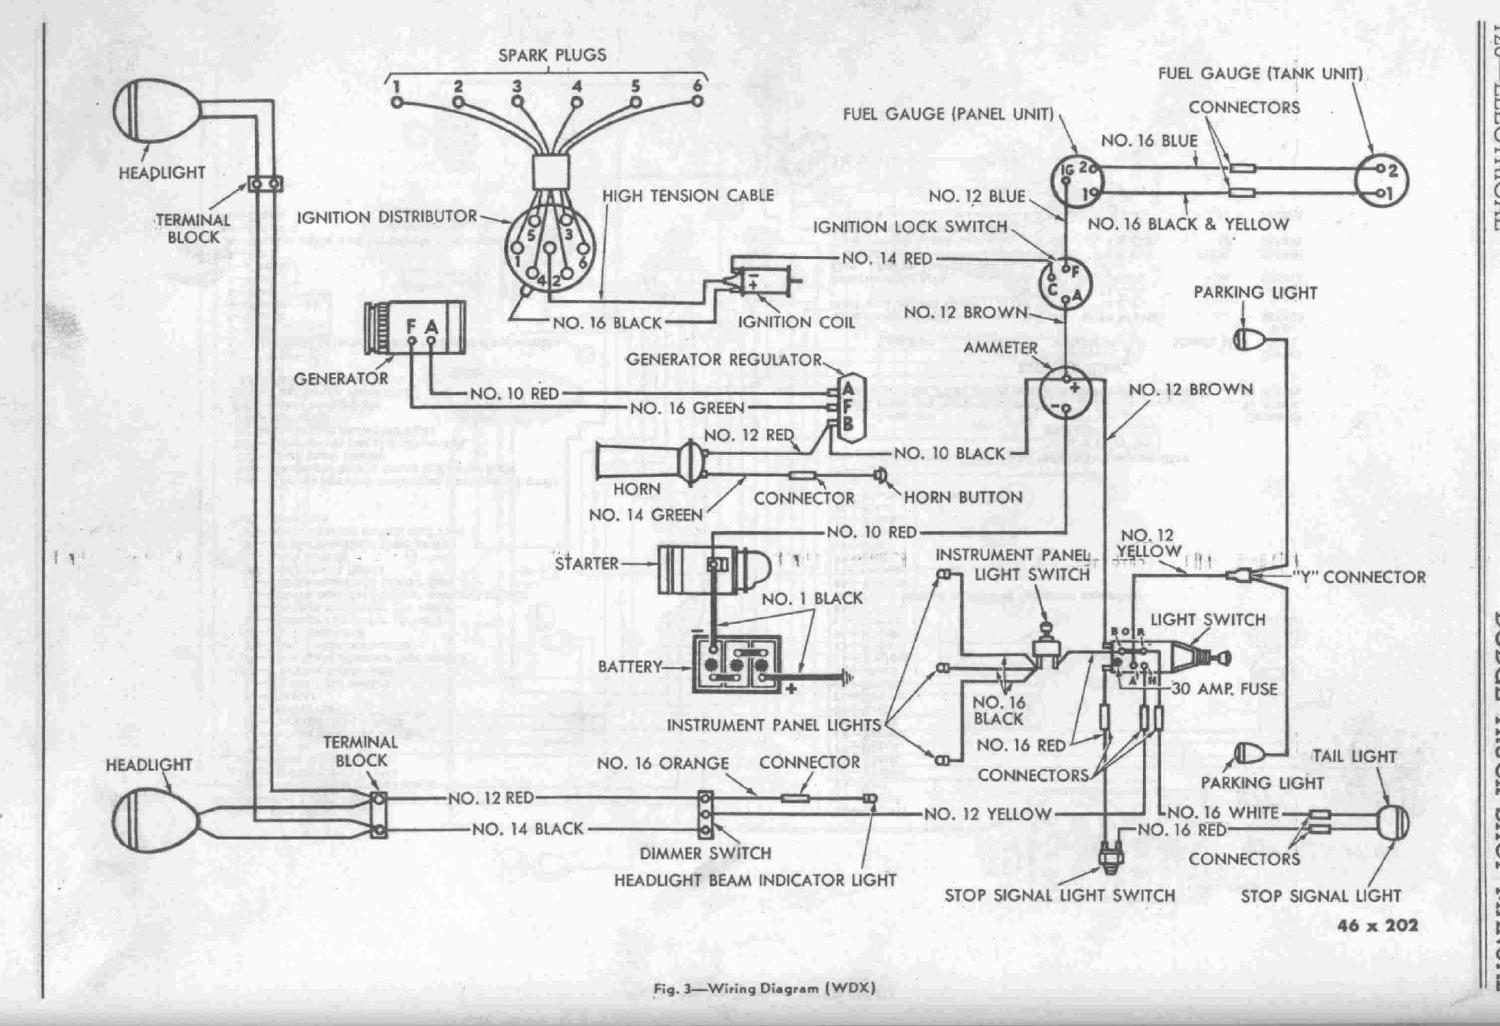 Dodge Wiring Diagram Wires. Dodge. Auto Parts Catalog And